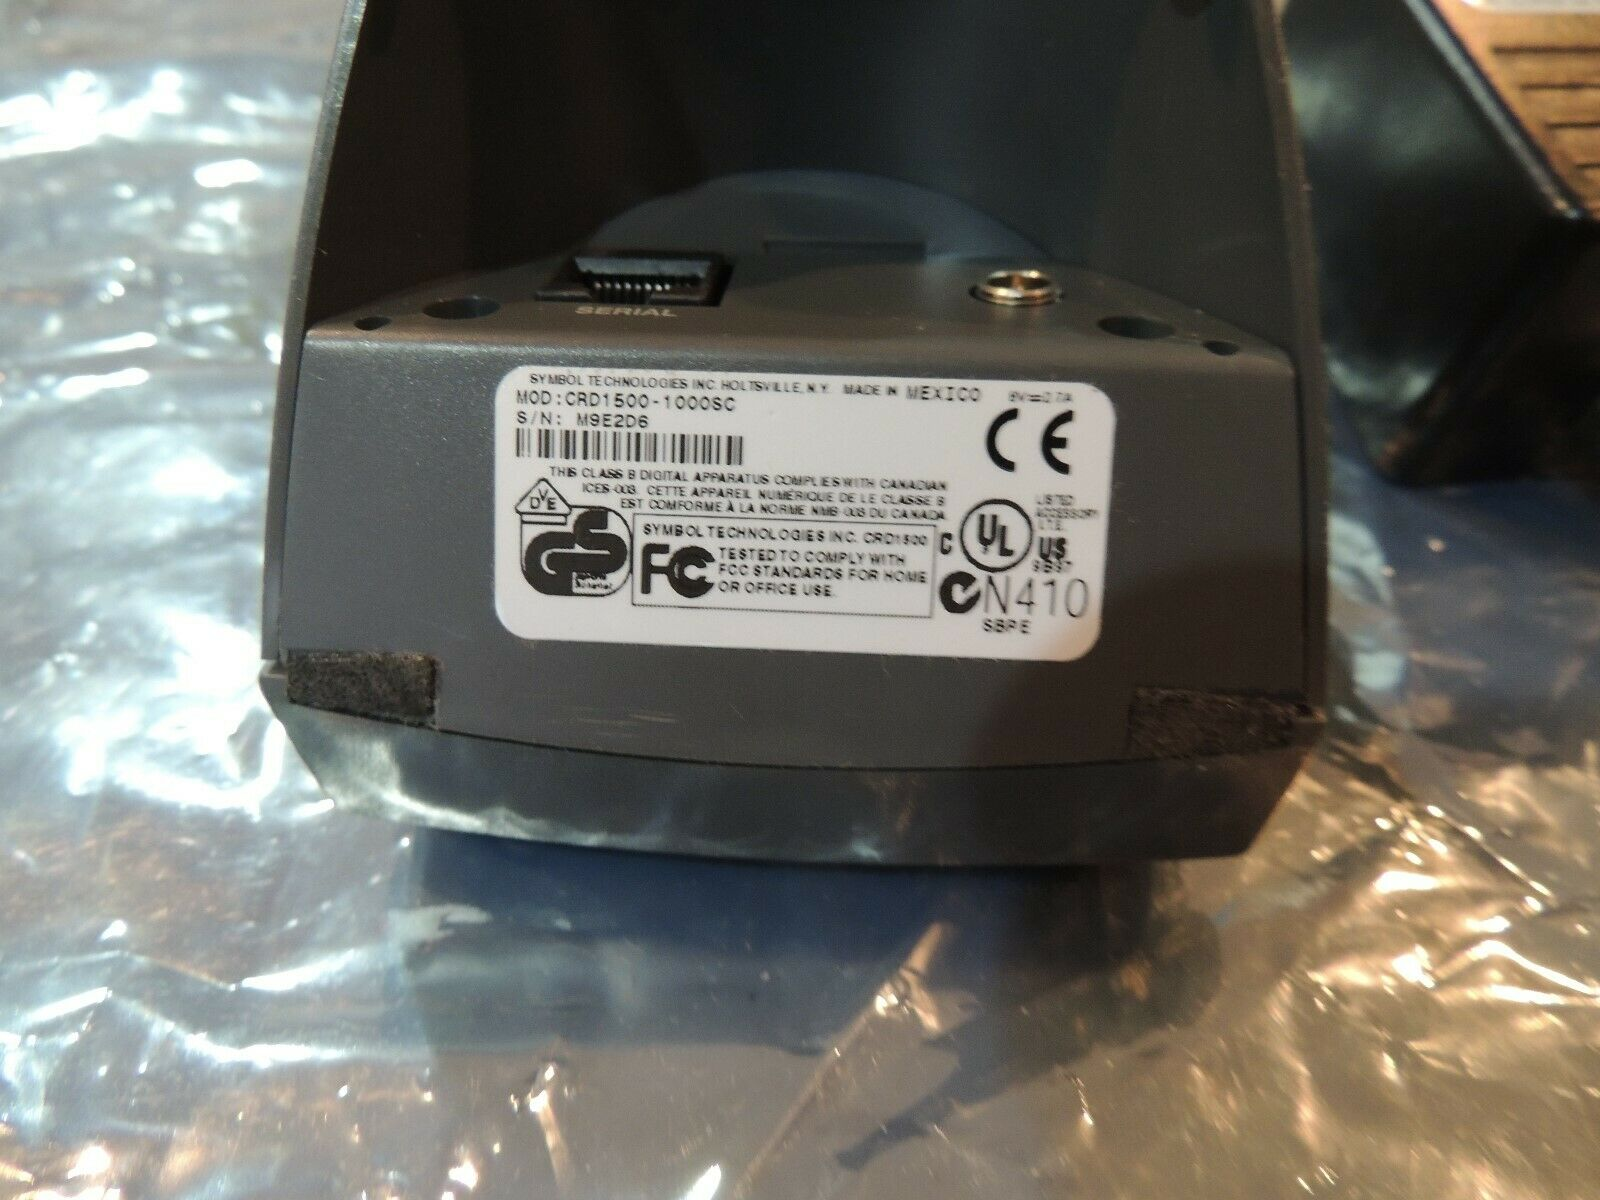 HOT SYNC CRADLE NEW IN BOX 1 YEAR WARRANTY* SYMBOL CRD1500-1000S FOR SPT1500